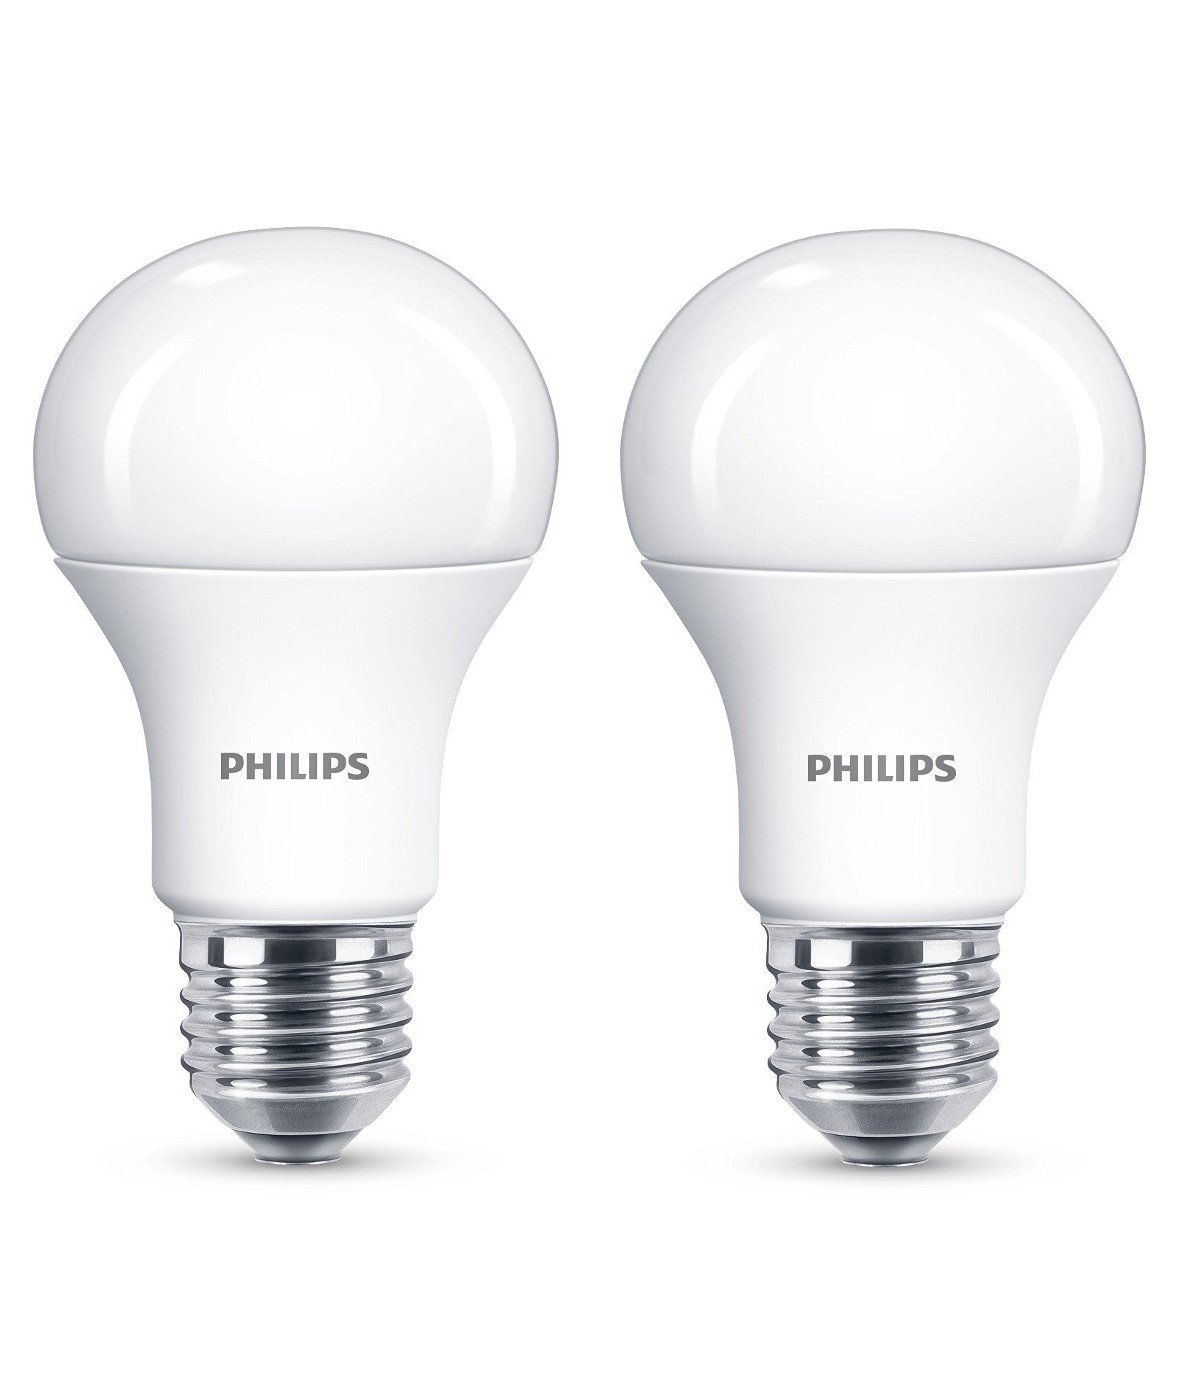 Eclairage Led Philips Lot De 2 Ampoules Led Philips 13w